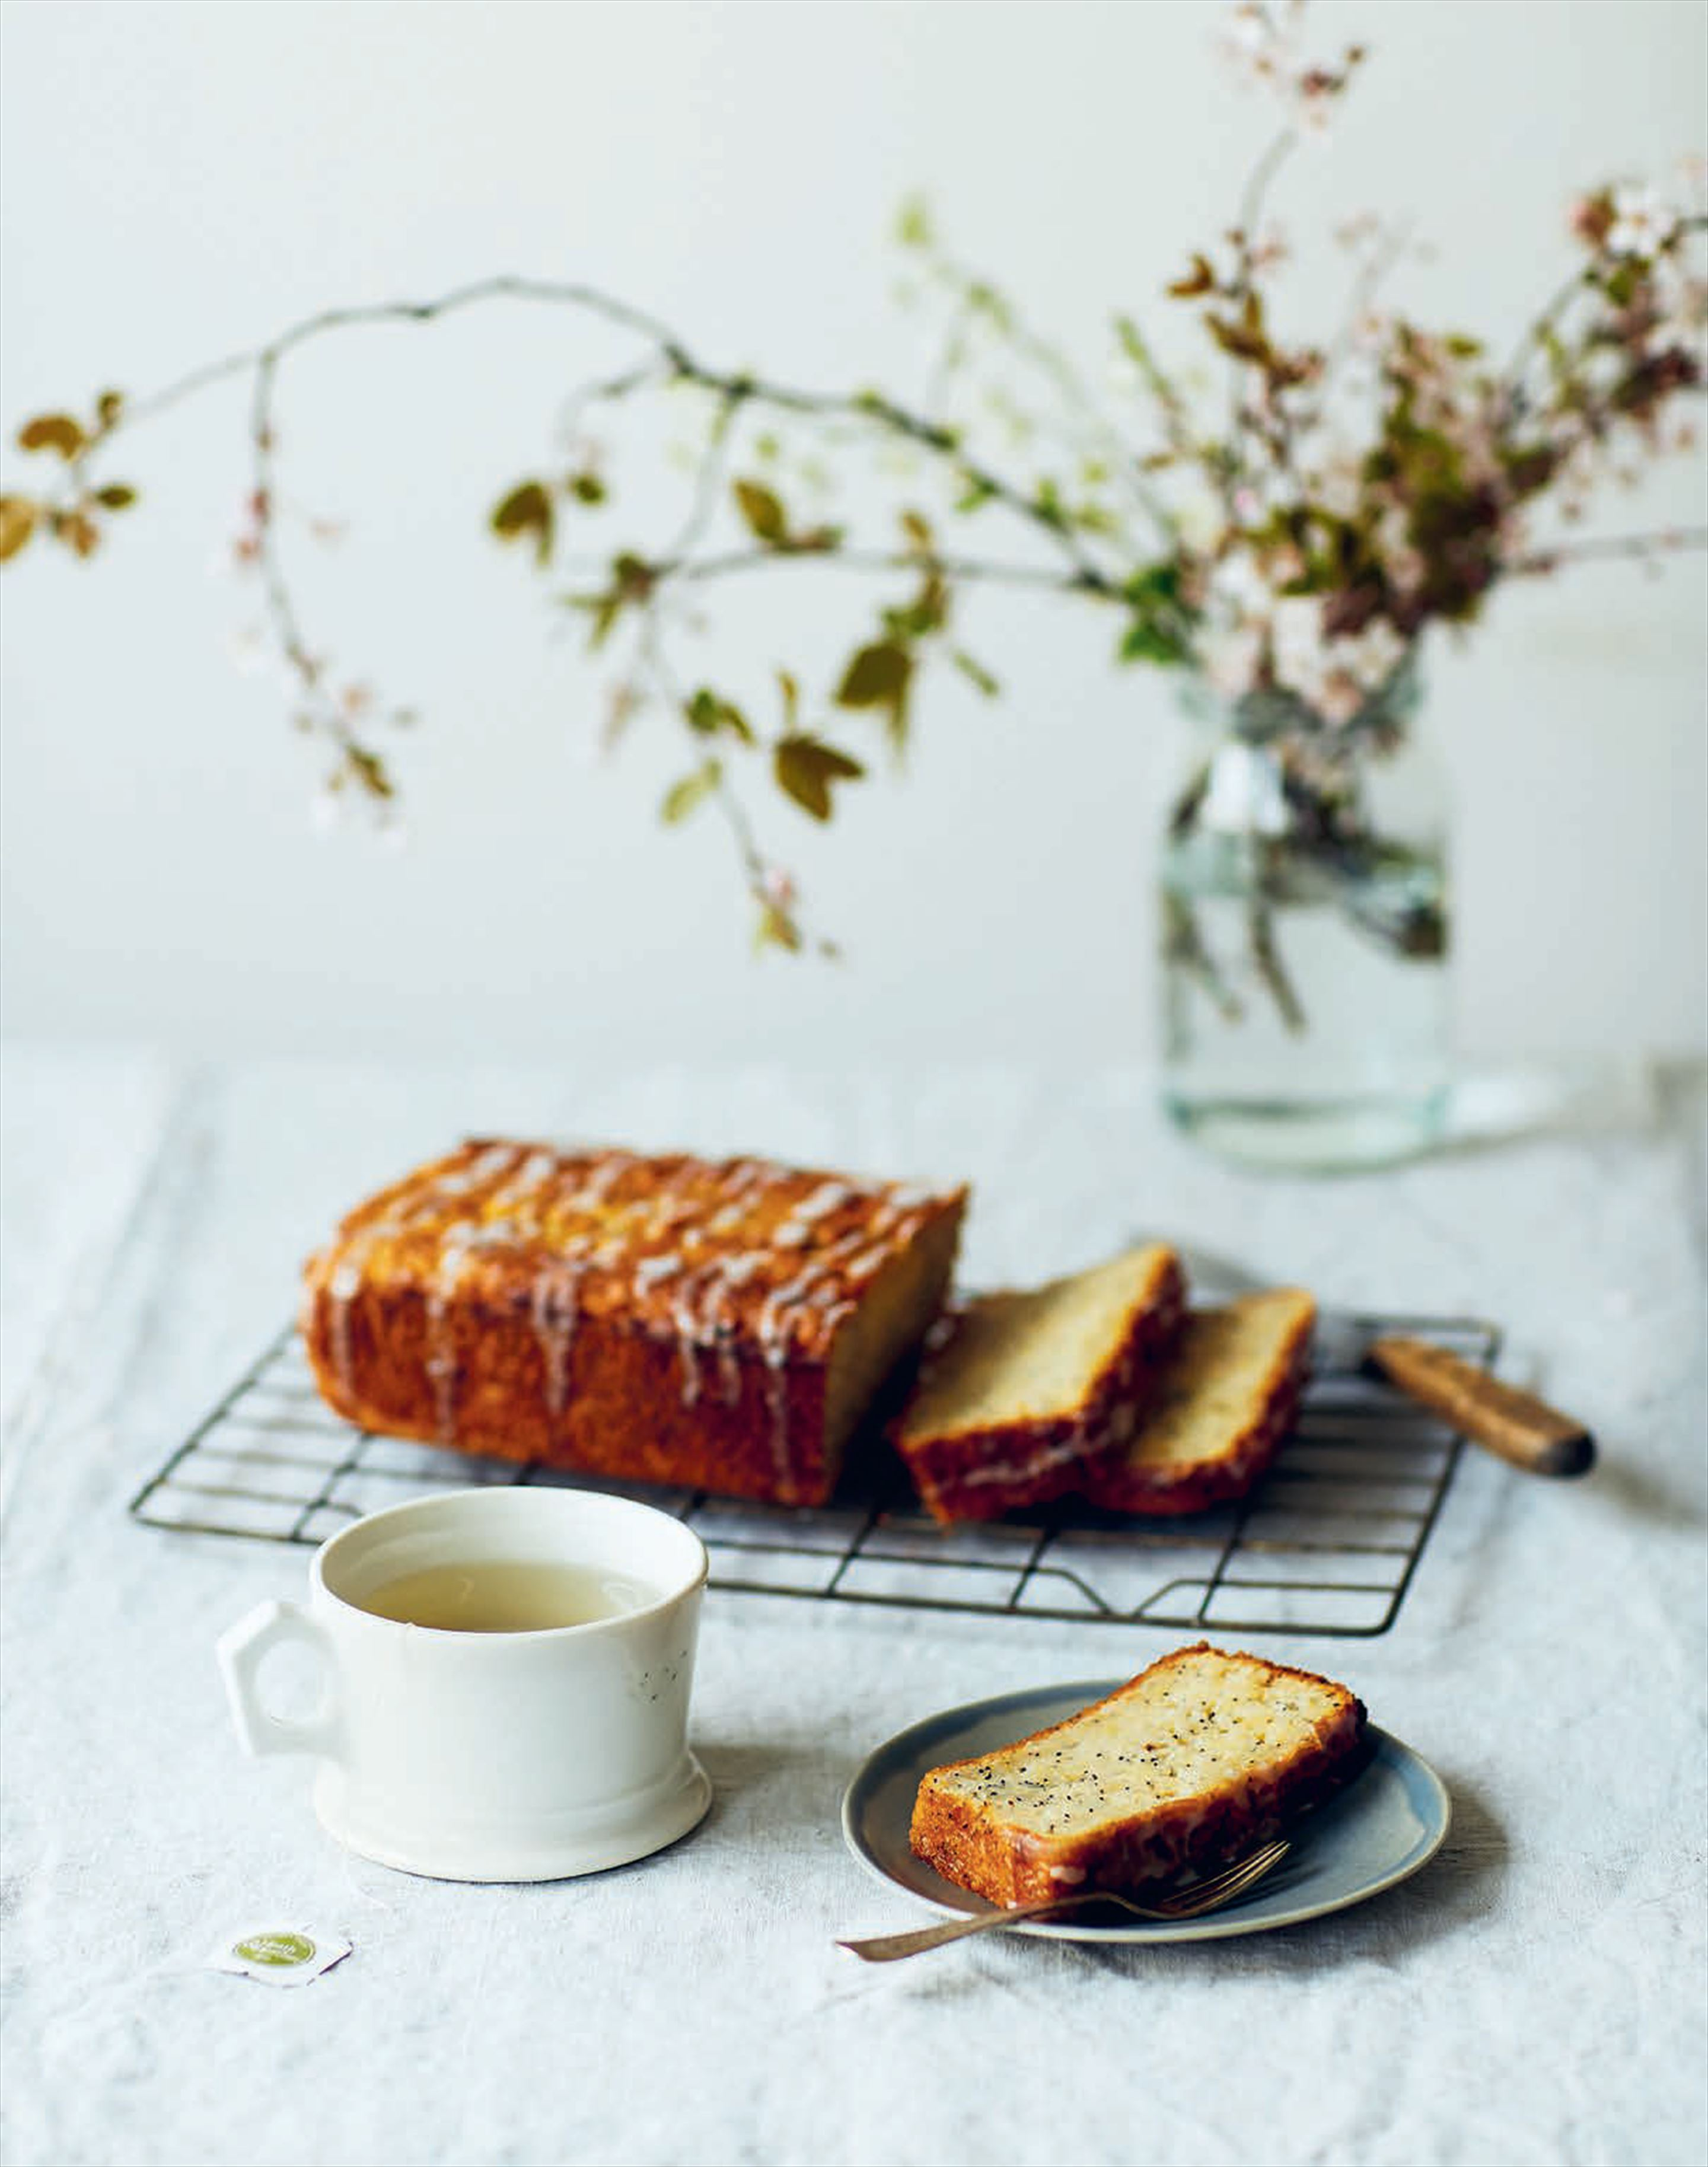 Parsnip & lemon loaf cake with poppy seeds